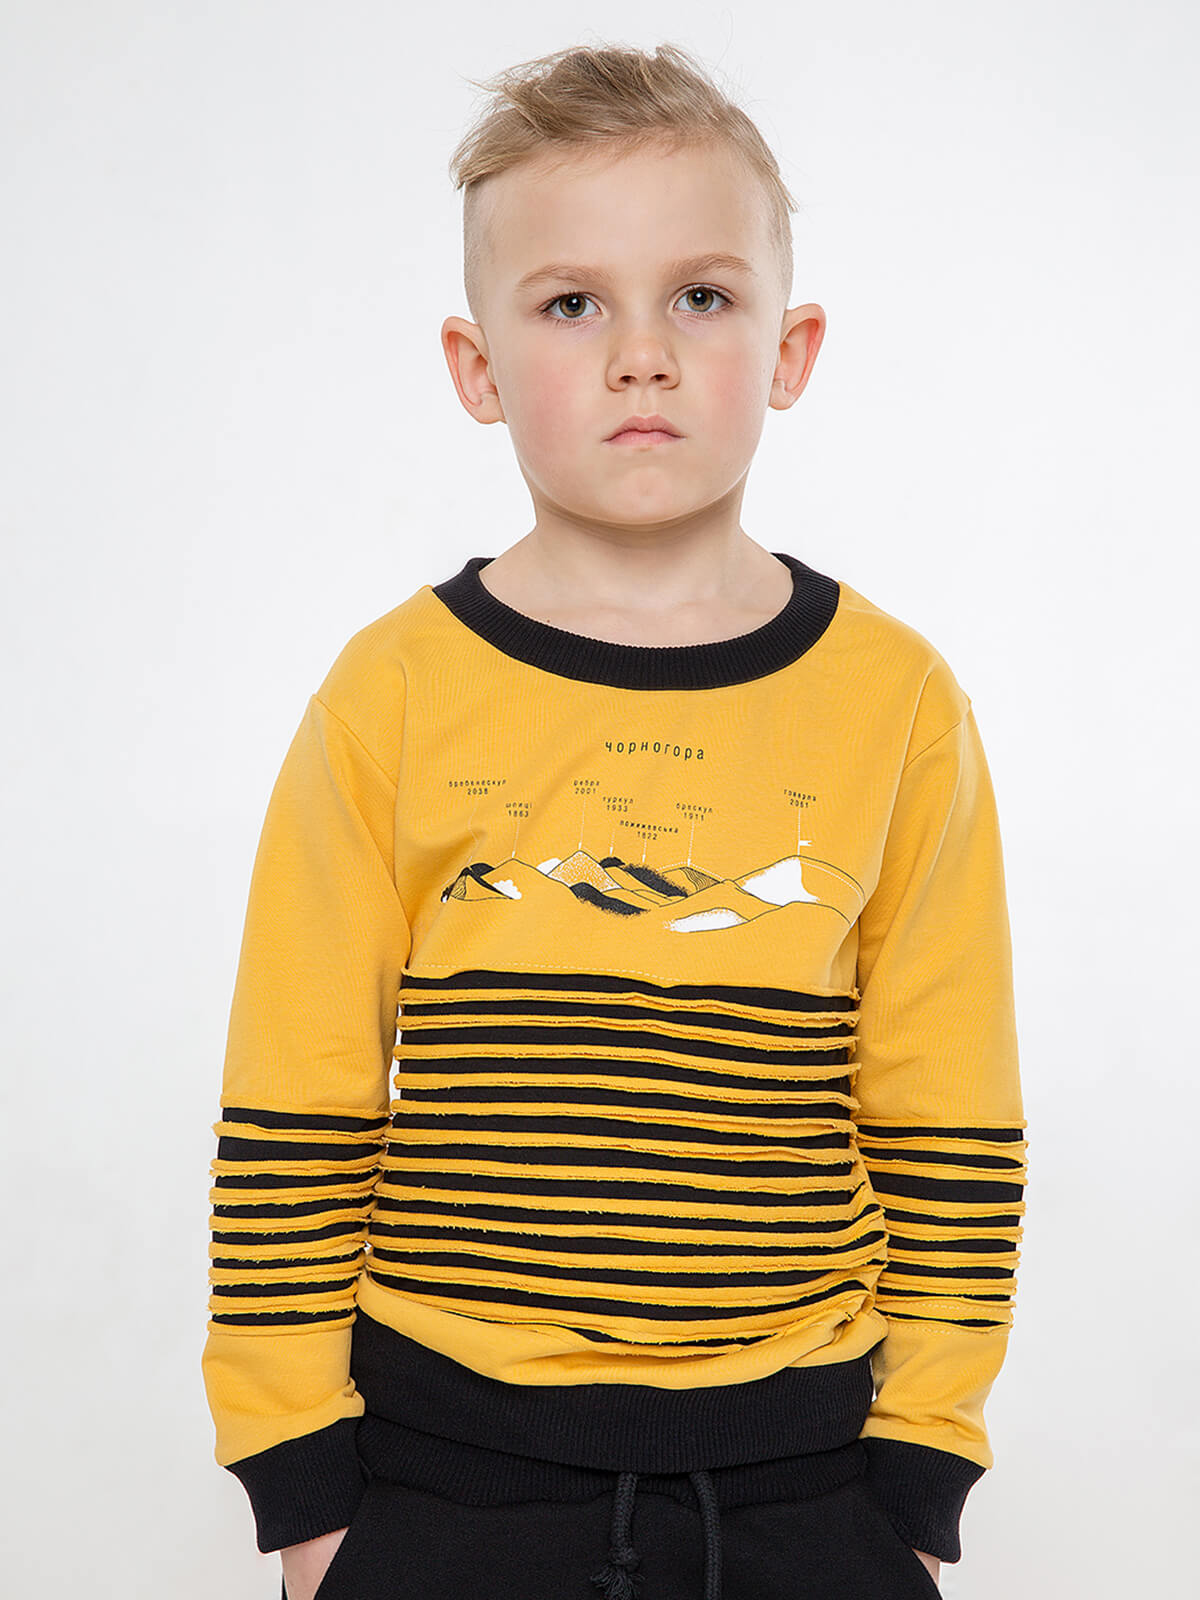 Kids Sweatshirt Chornogora. Color yellow. Hoodie: unisex, well suited for both boys and girls.